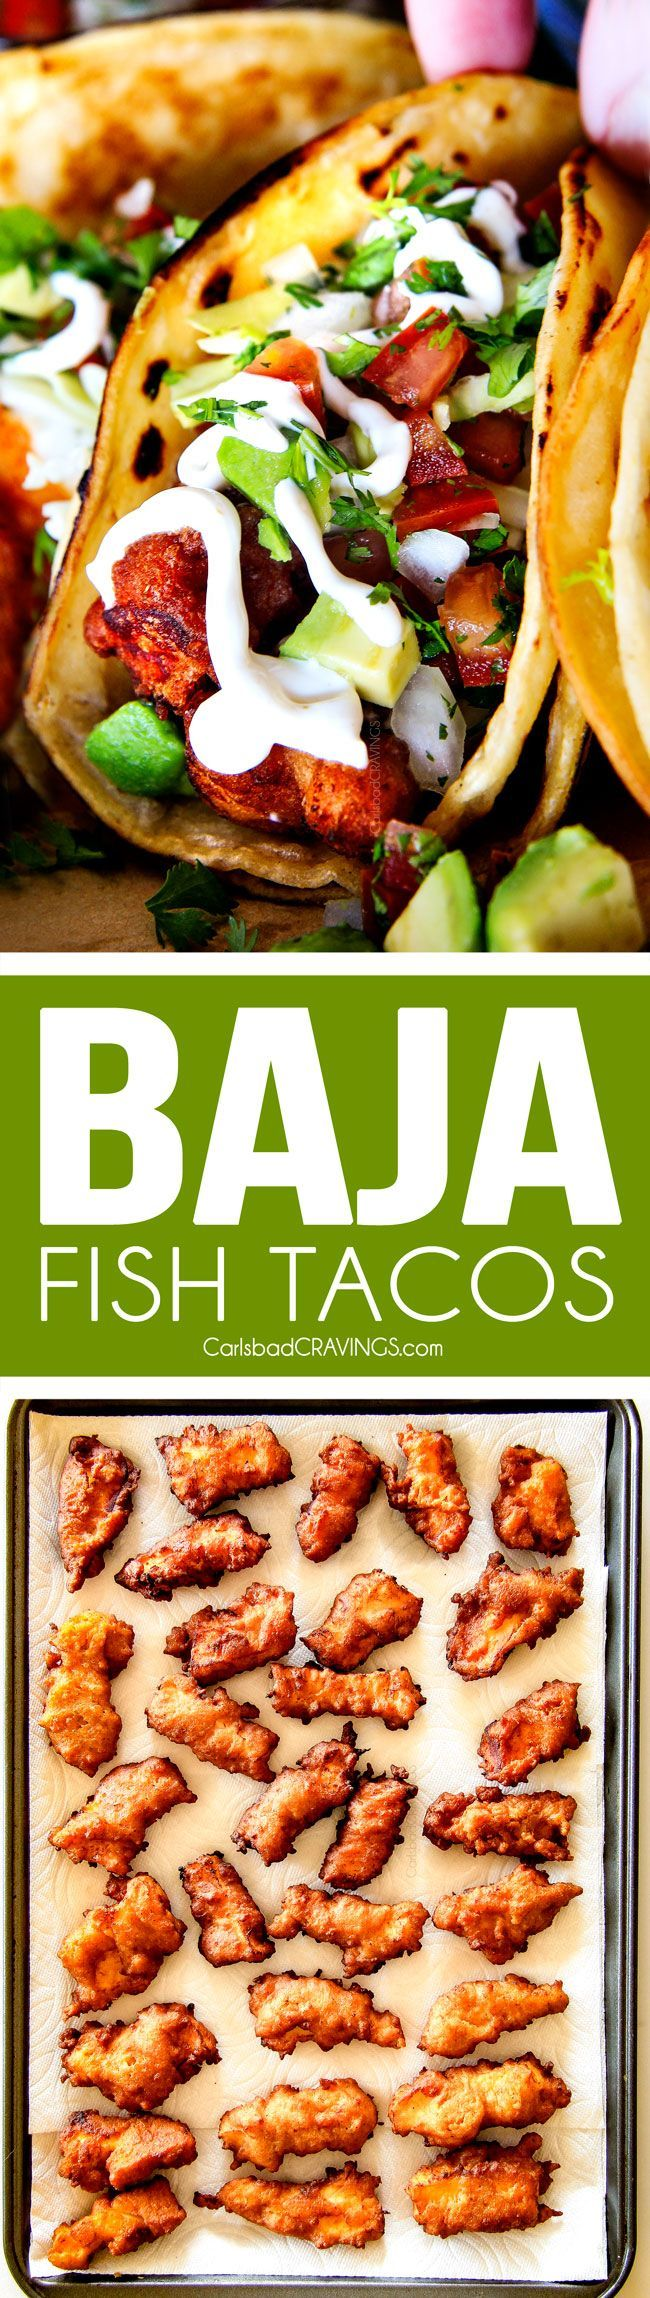 Crispy fried Baja Fish Tacos are BETTER than any restaurant!!! I can't even believe how good these are and super easy with a one step batter. And don't skip the white sauce - its heavenly!